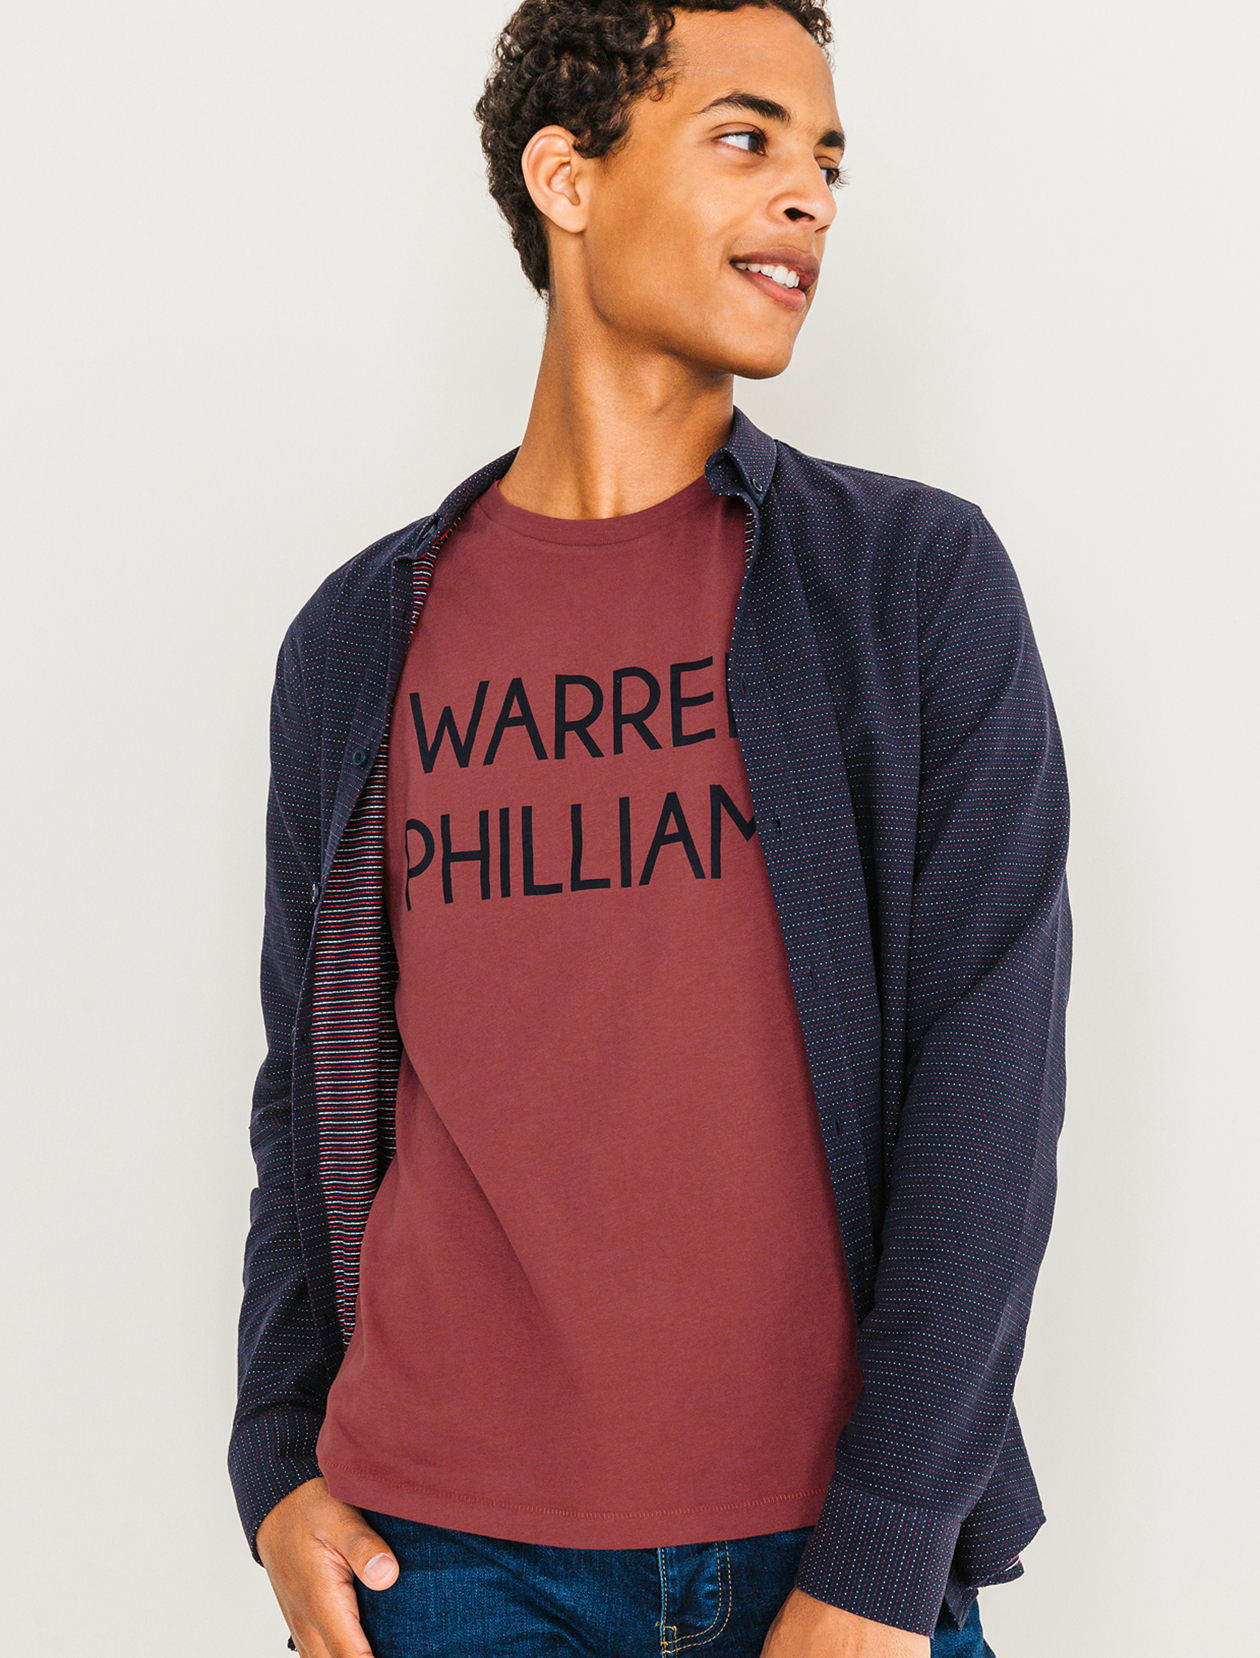 Tee shirt Warrel Philliams homme